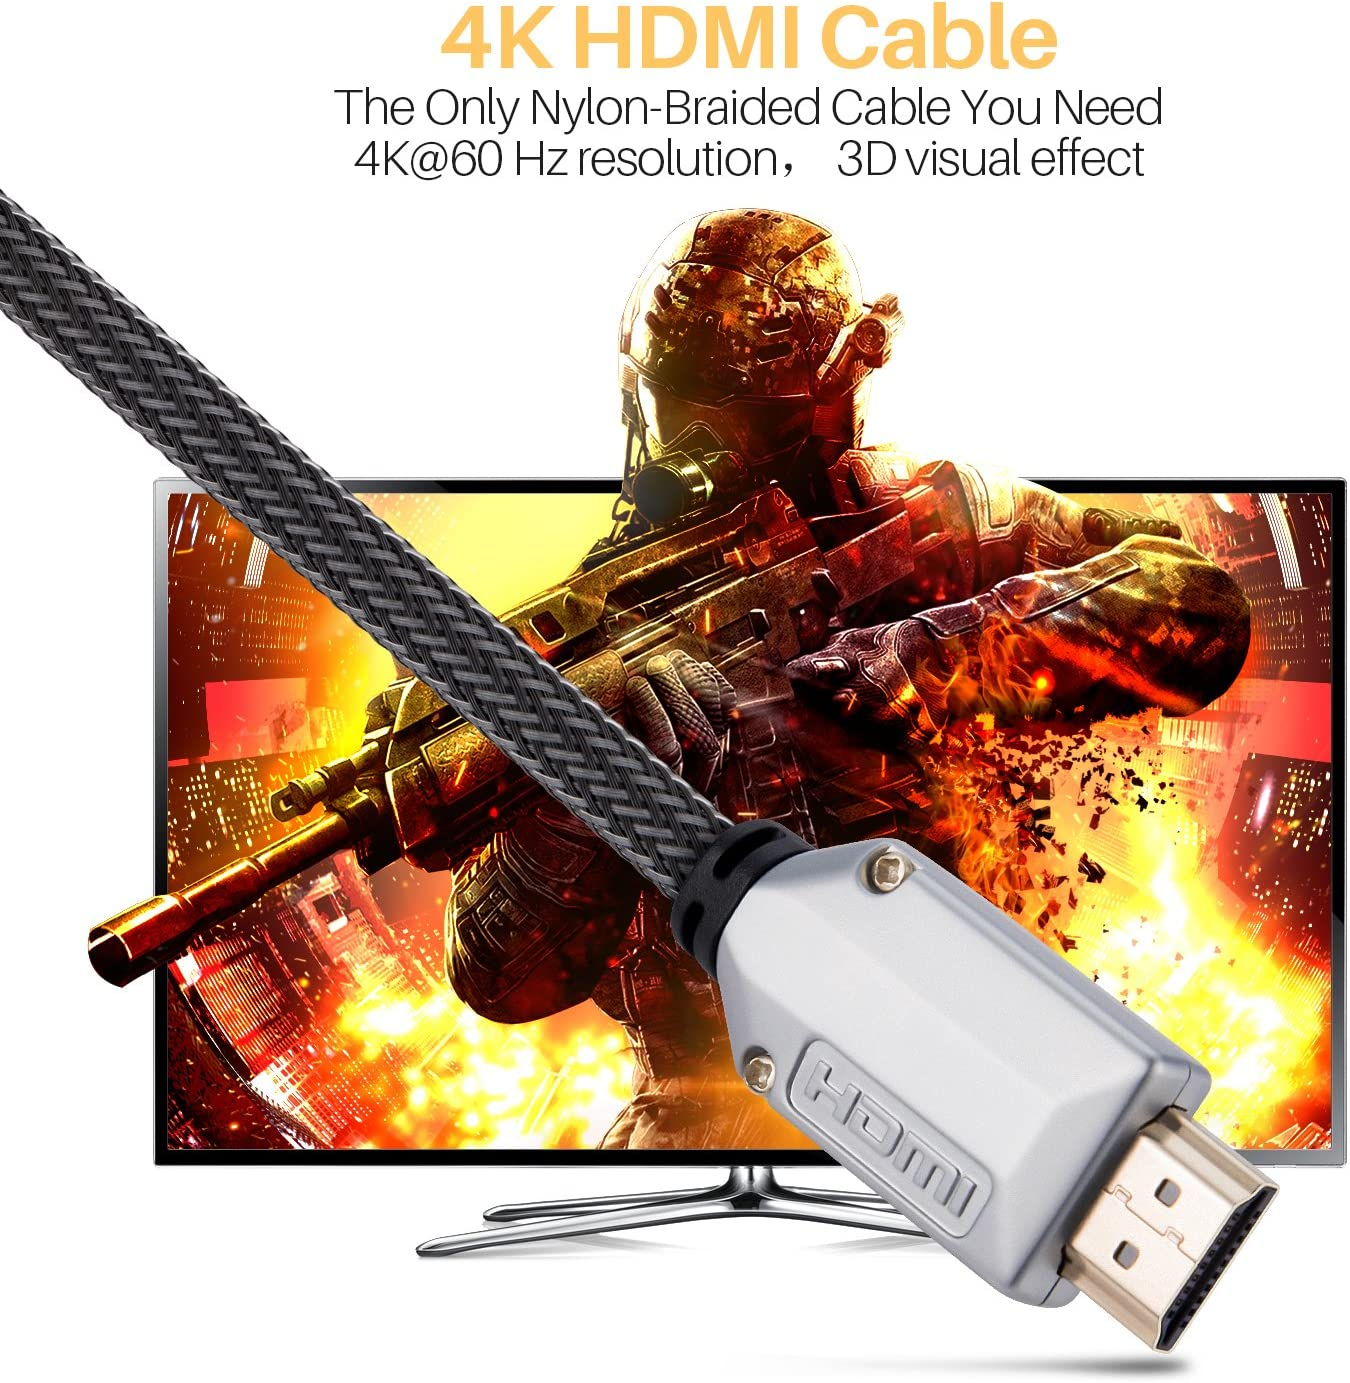 Ethernet//Audio Return Playstation PS4 PC - HDMI 2.0 Video 4K 2160p HD 1080p 3D Ready 4K @ 60Hz HDMI Cable Gold Plated Connectors 6ft 30AWG Braided Cord High Speed 18Gbps TV